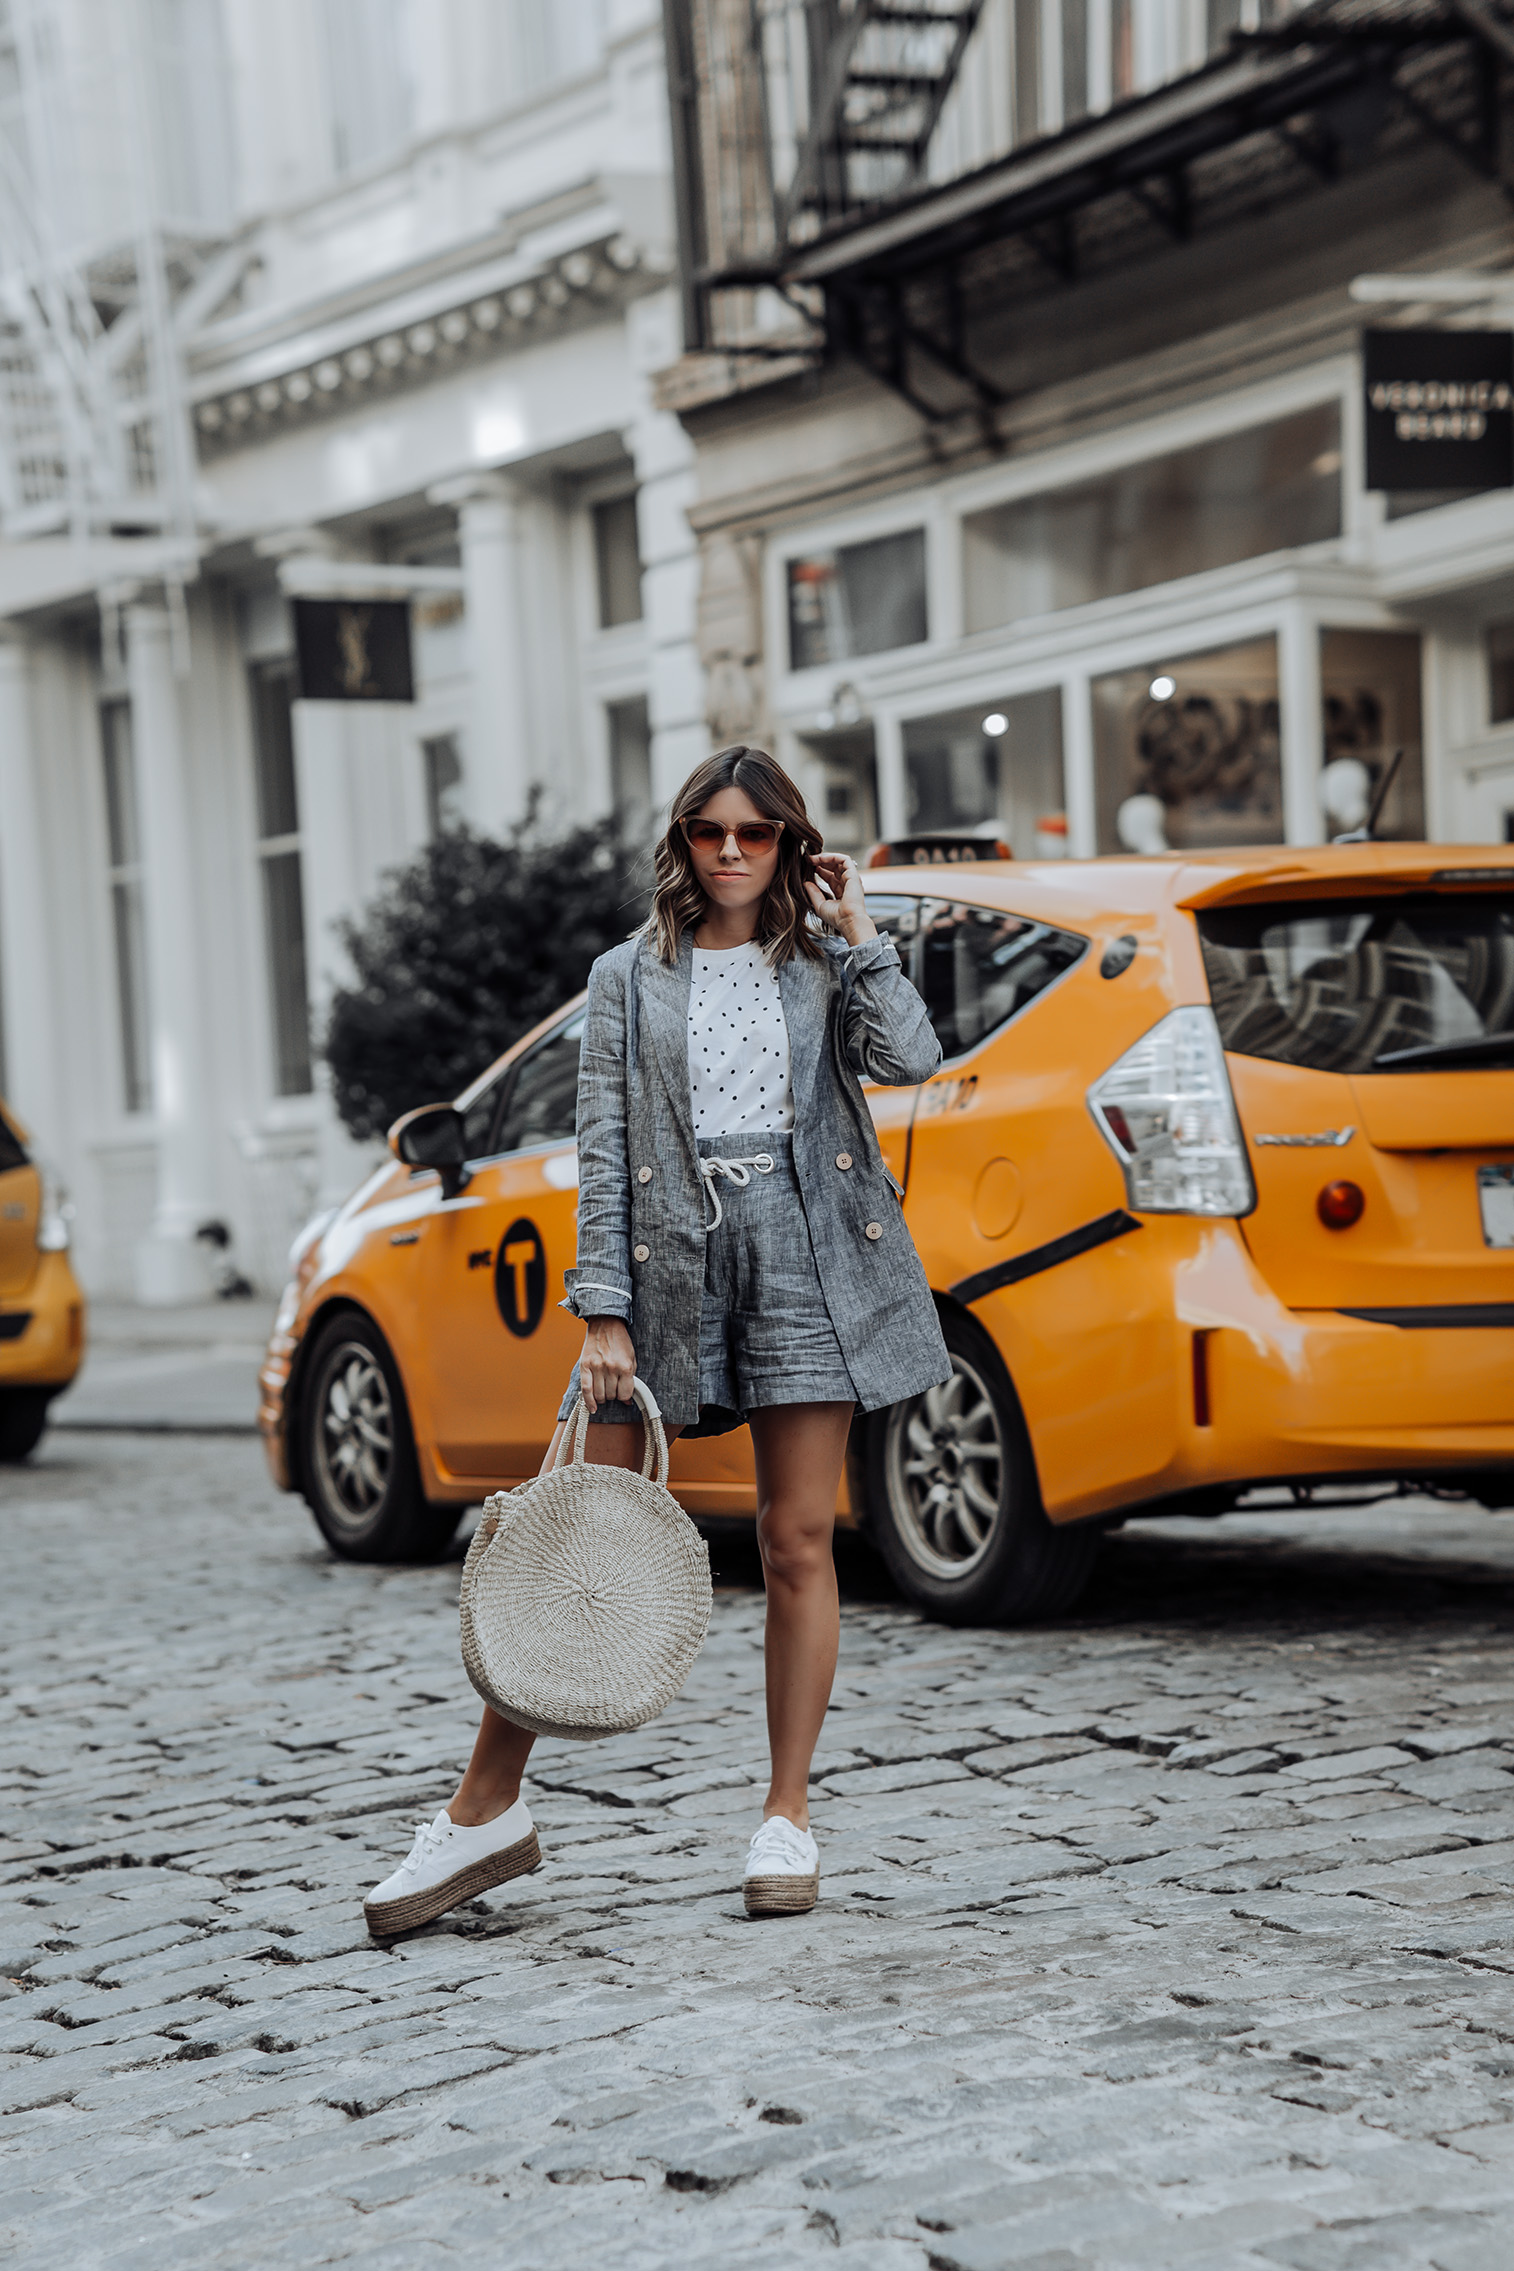 Linen Two piece set | Linen Shorts | Crop top polka dot top | Linen Blazer | Clare V. Alice Tote | Superga 2790 Espadrille Flatform Trainers #liketkit #mango #streetstyle #twopicesets #sneakeroutfits